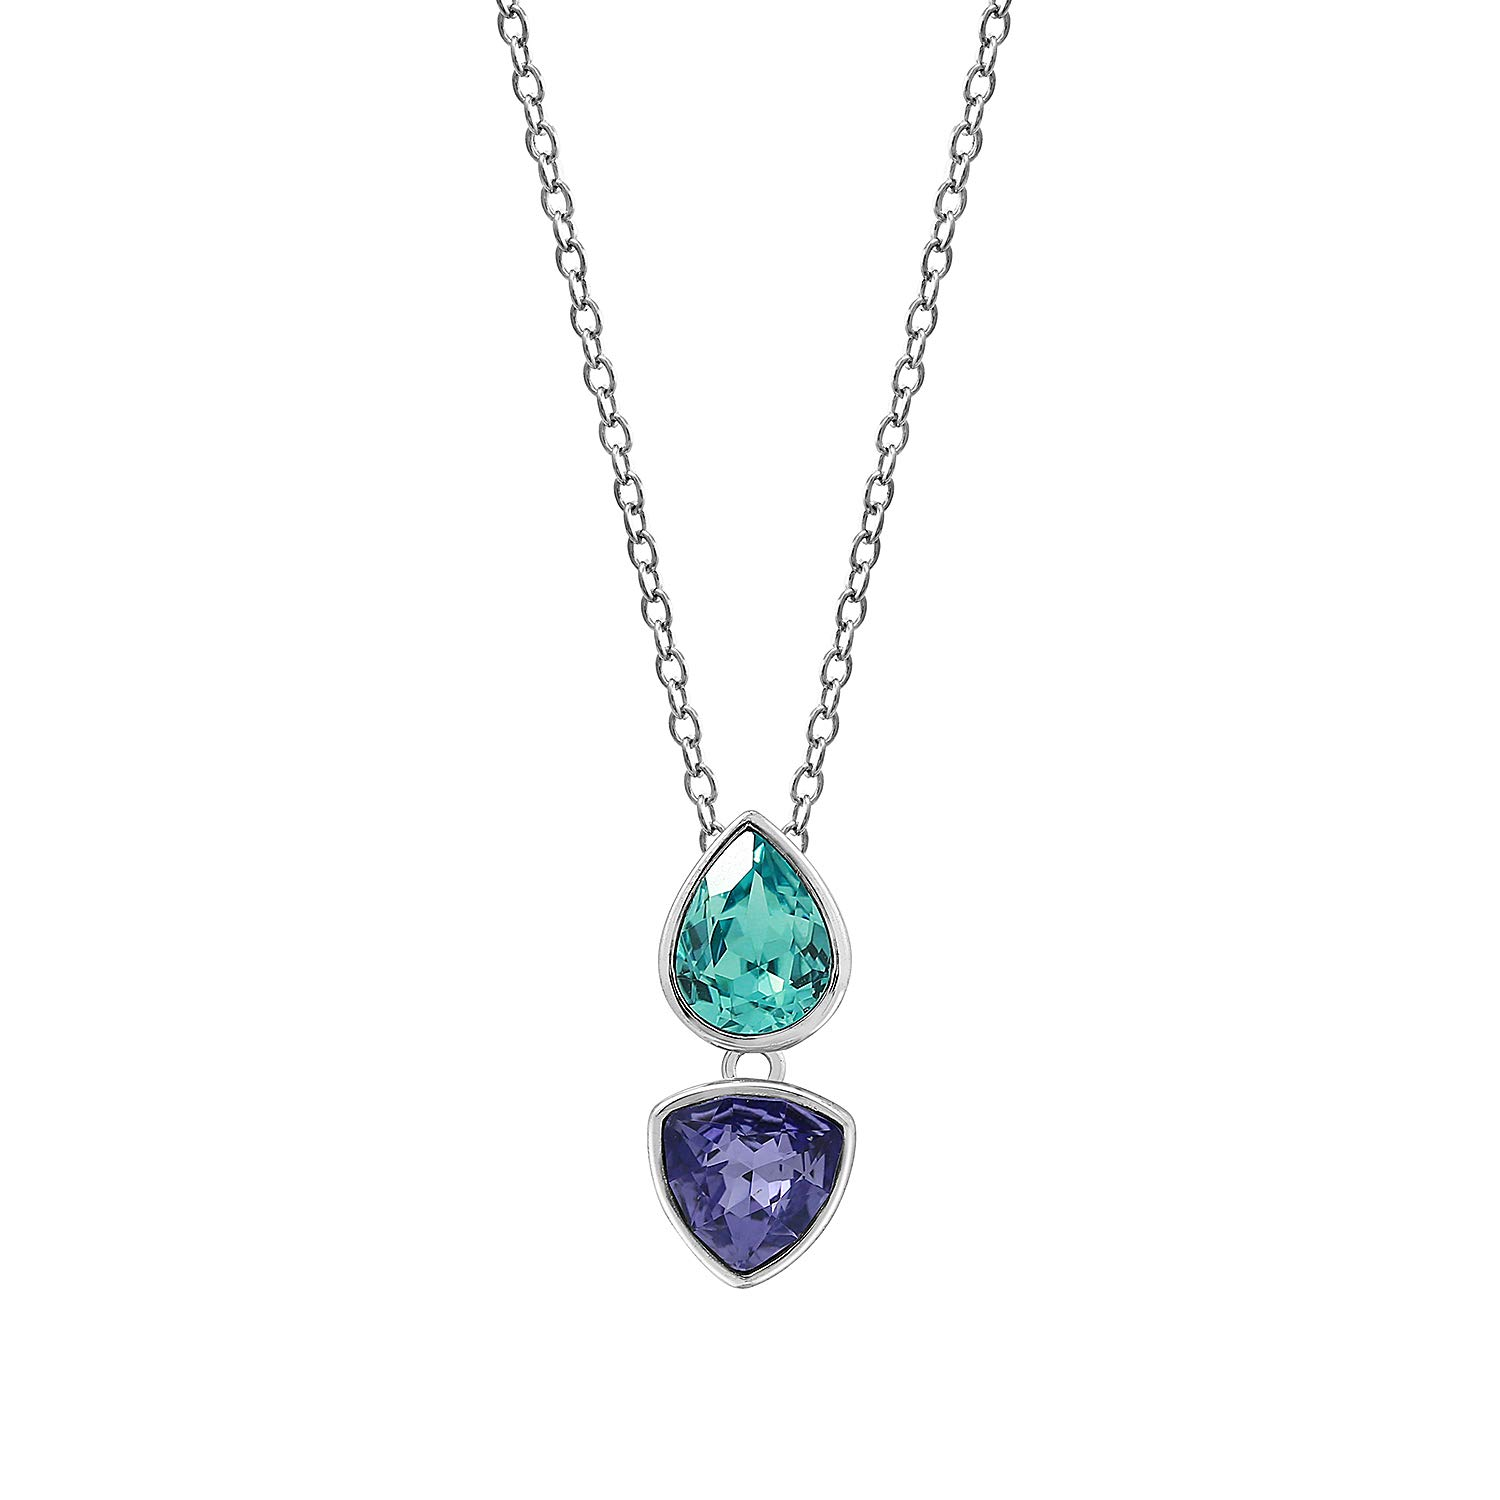 JADMIRE Swarovski Elements Crystal Tanzanite Pear Bezel Pendant Necklace Platinum Plated Sterling Silver